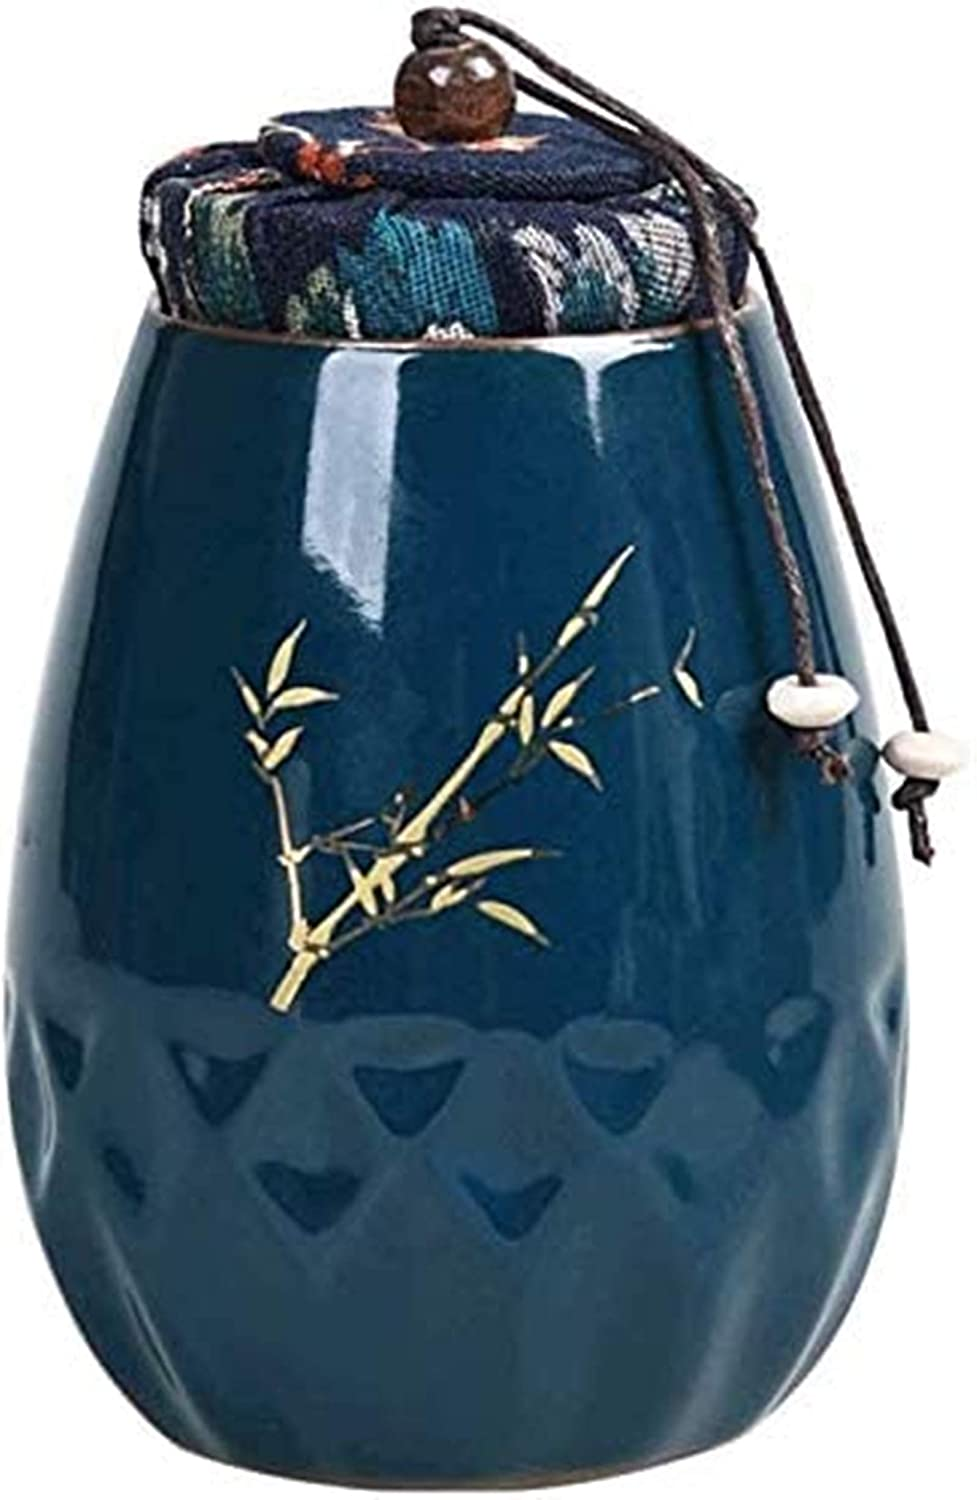 lpzsmd Urns for Ashes Sea Urn Dogs Safety and Popularity trust Decorative